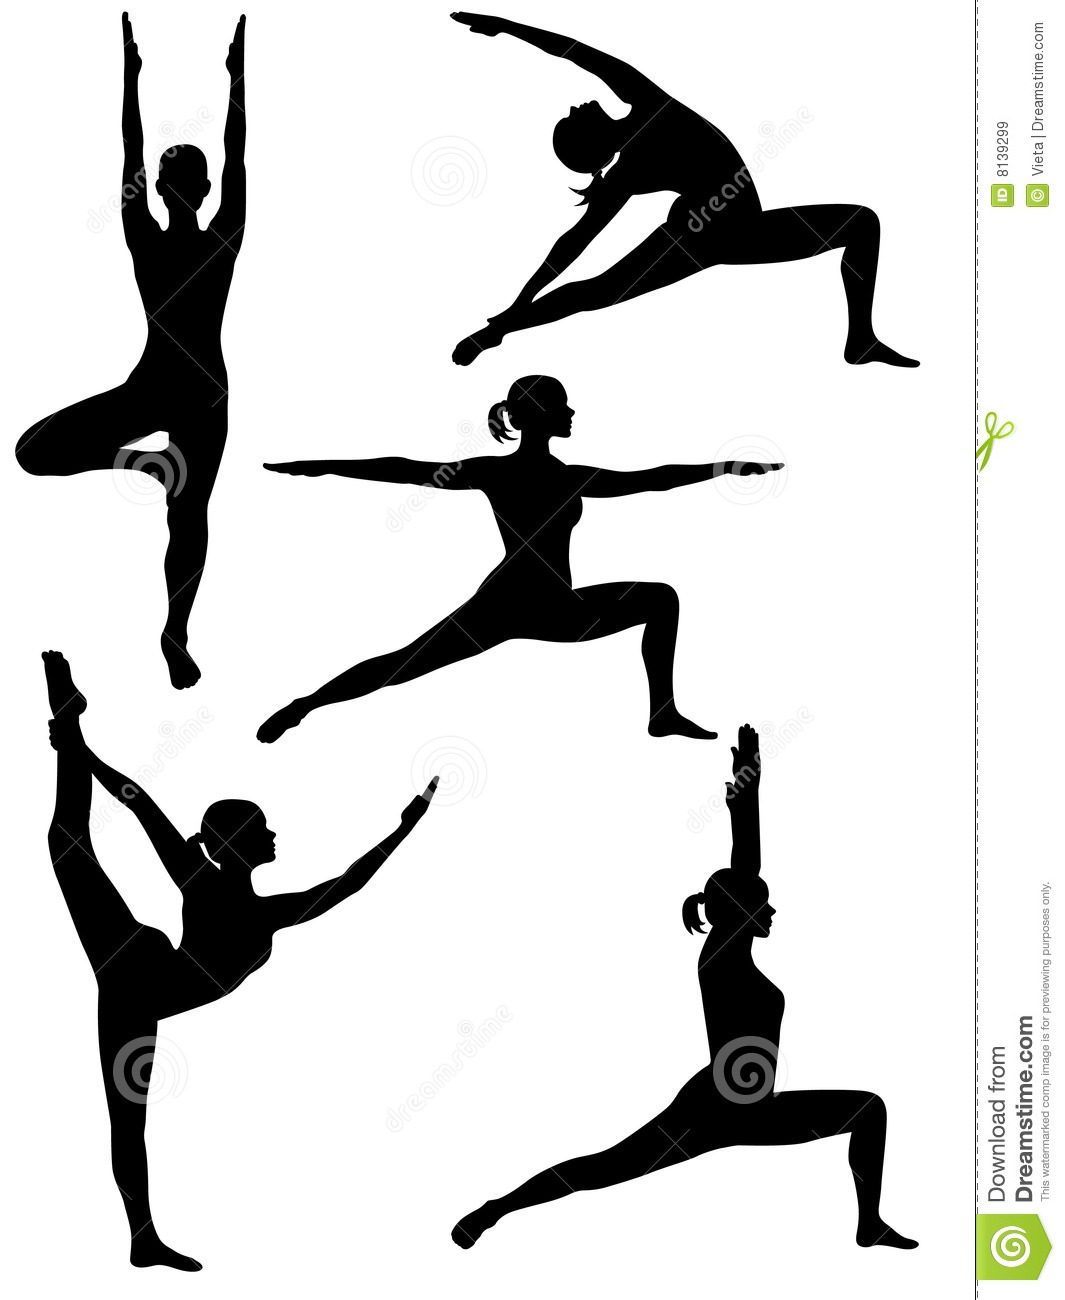 Yoga silhouette 2 stock vector. Illustration of mind ...